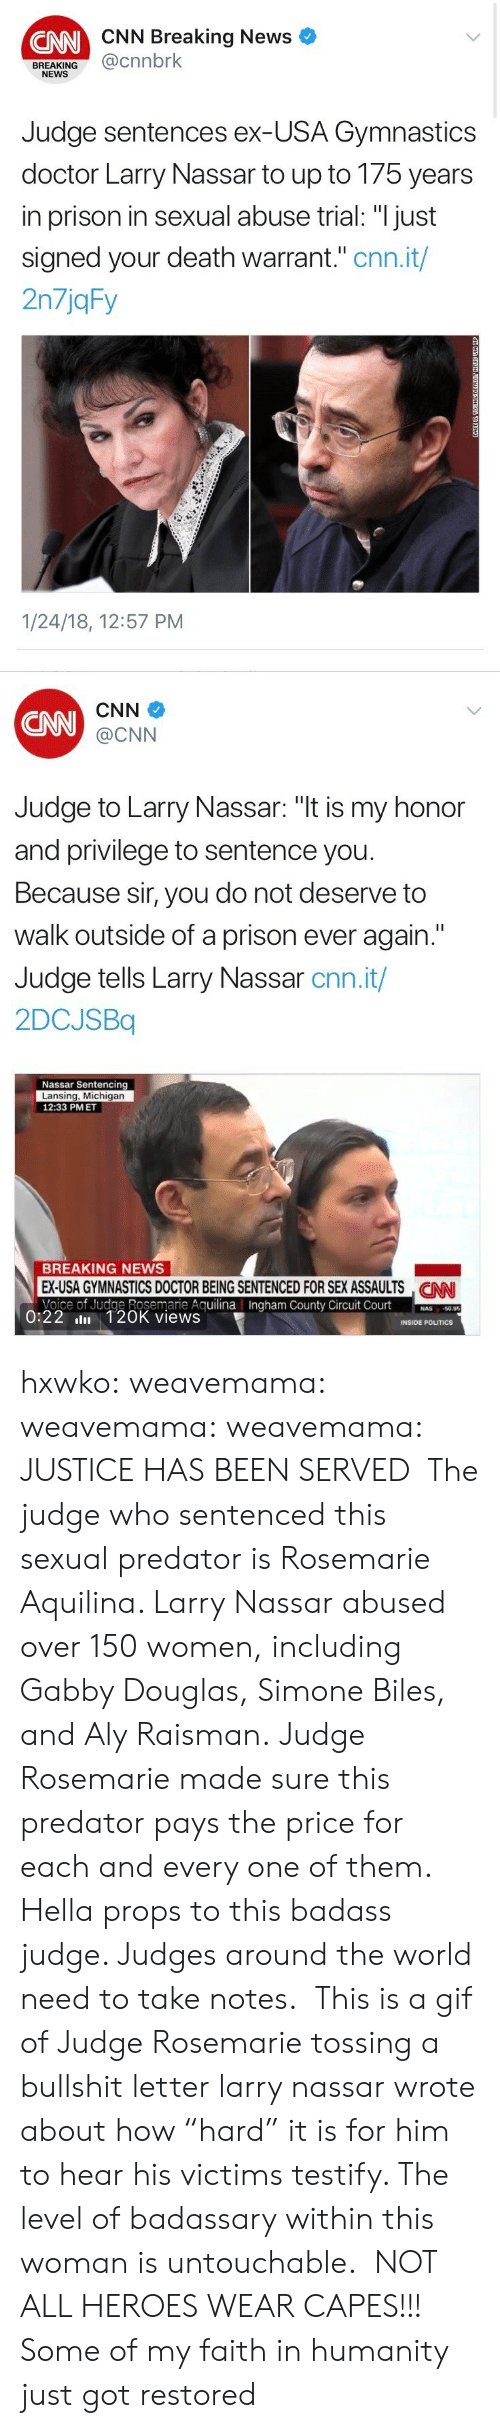 "A Gif: CNN Breaking News  CNN  BREAKING@cnnbrk  NEWS  Judge sentences ex-USA Gymnastics  doctor Larry Nassar to up to 175 years  in prison in sexual abuse trial: ""I just  signed your death warrant."" cnn.it/  2n7jqFy  1/24/18, 12:57 PM   CNN  CNN  @CNN  Judge to Larry Nassar: ""t is my honor  and privilege to sentence you  Because sir, you do not deserve to  walk outside of a prison ever again.""  Judge tells Larry Nassar cnn.it/  2DCJSBq  Nassar Sentencing  Lansing, Michigan  12:33 PMET  BREAKING NEWS  EX-USA GYMNASTICS DOCTOR BEING SENTENCED FOR SEX ASSAULTS NN  Voice of Judge Rosemarie AguilinaIngham County Circuit Court0  CAN  County  50.95  0:22 